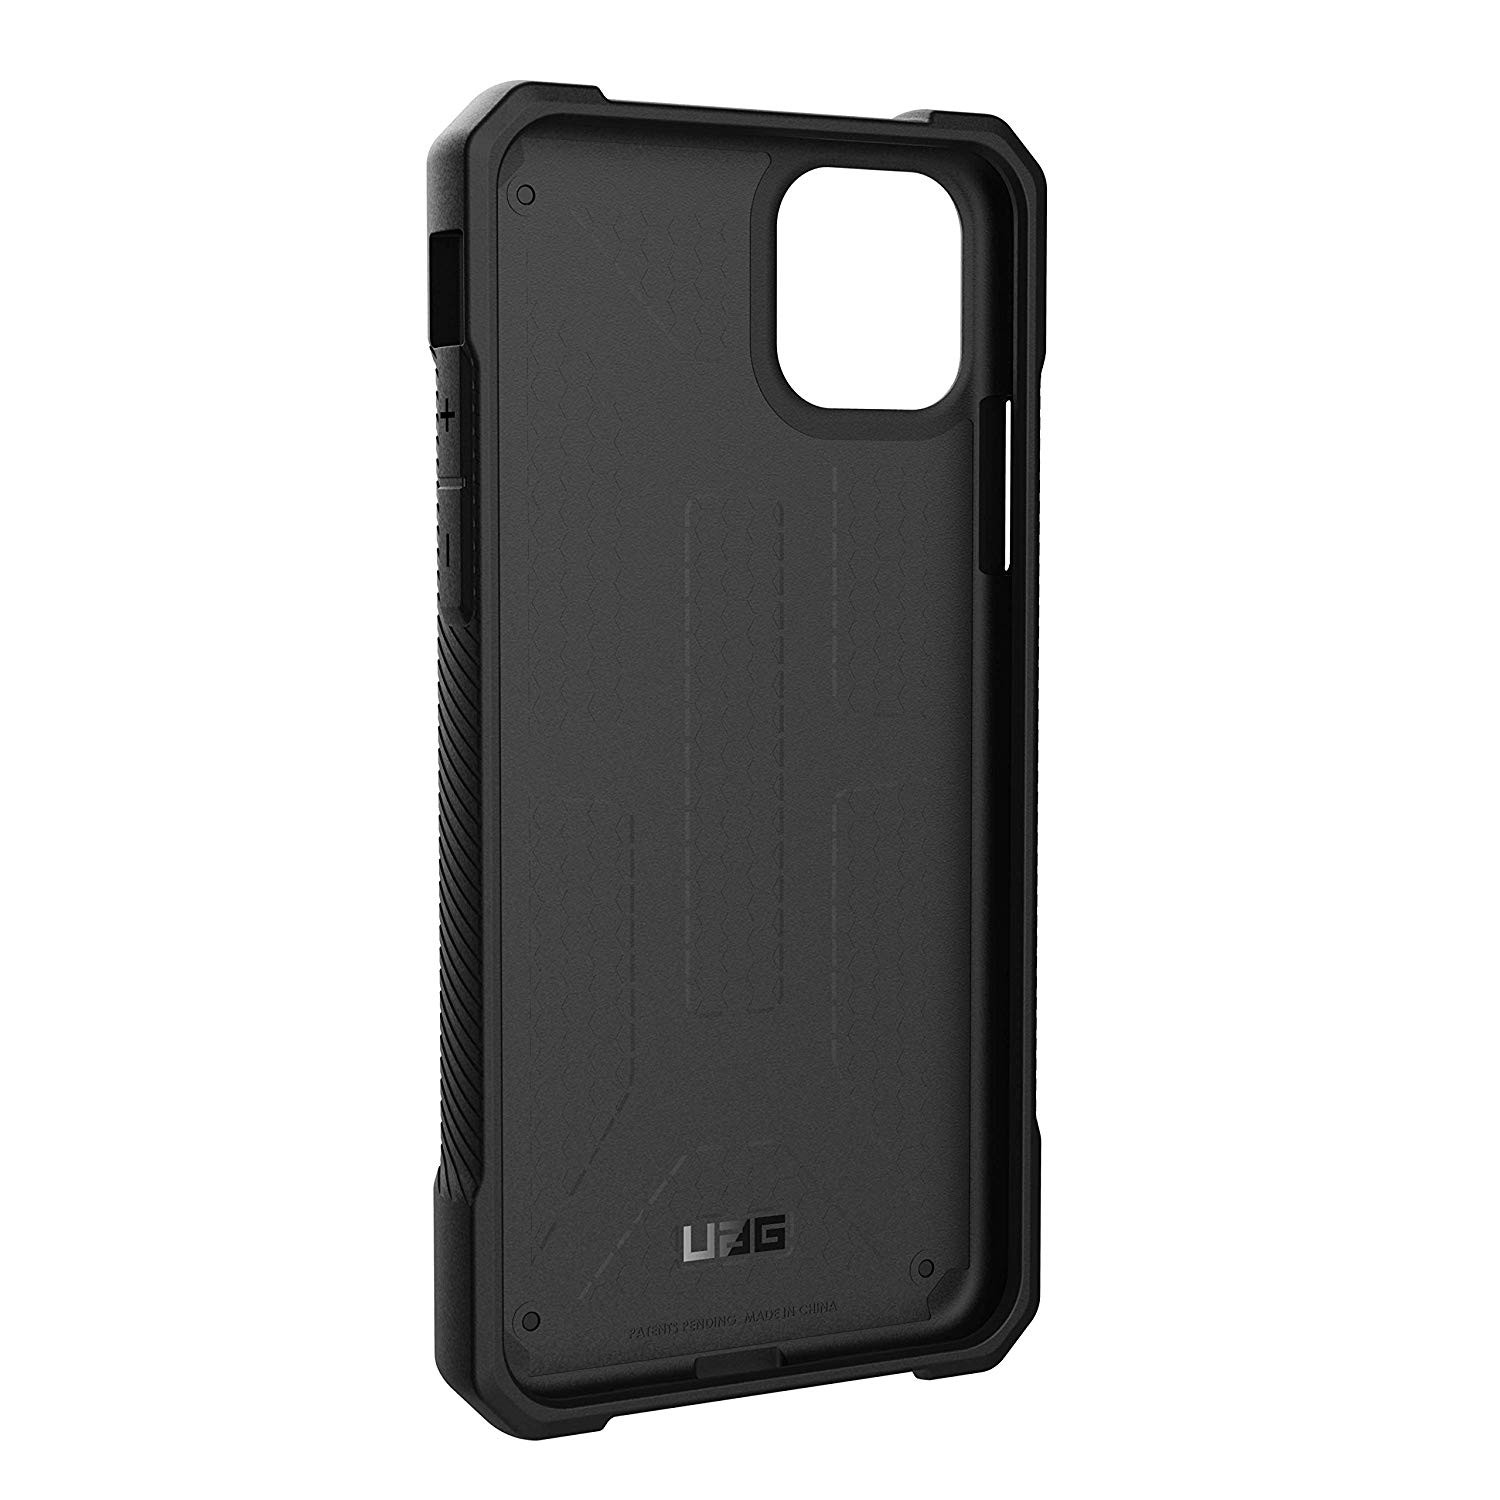 UAG Monarch for iPhone 11 Pro Max Feather-Light Rugged Military Drop Tested Case - Black, 111721114040